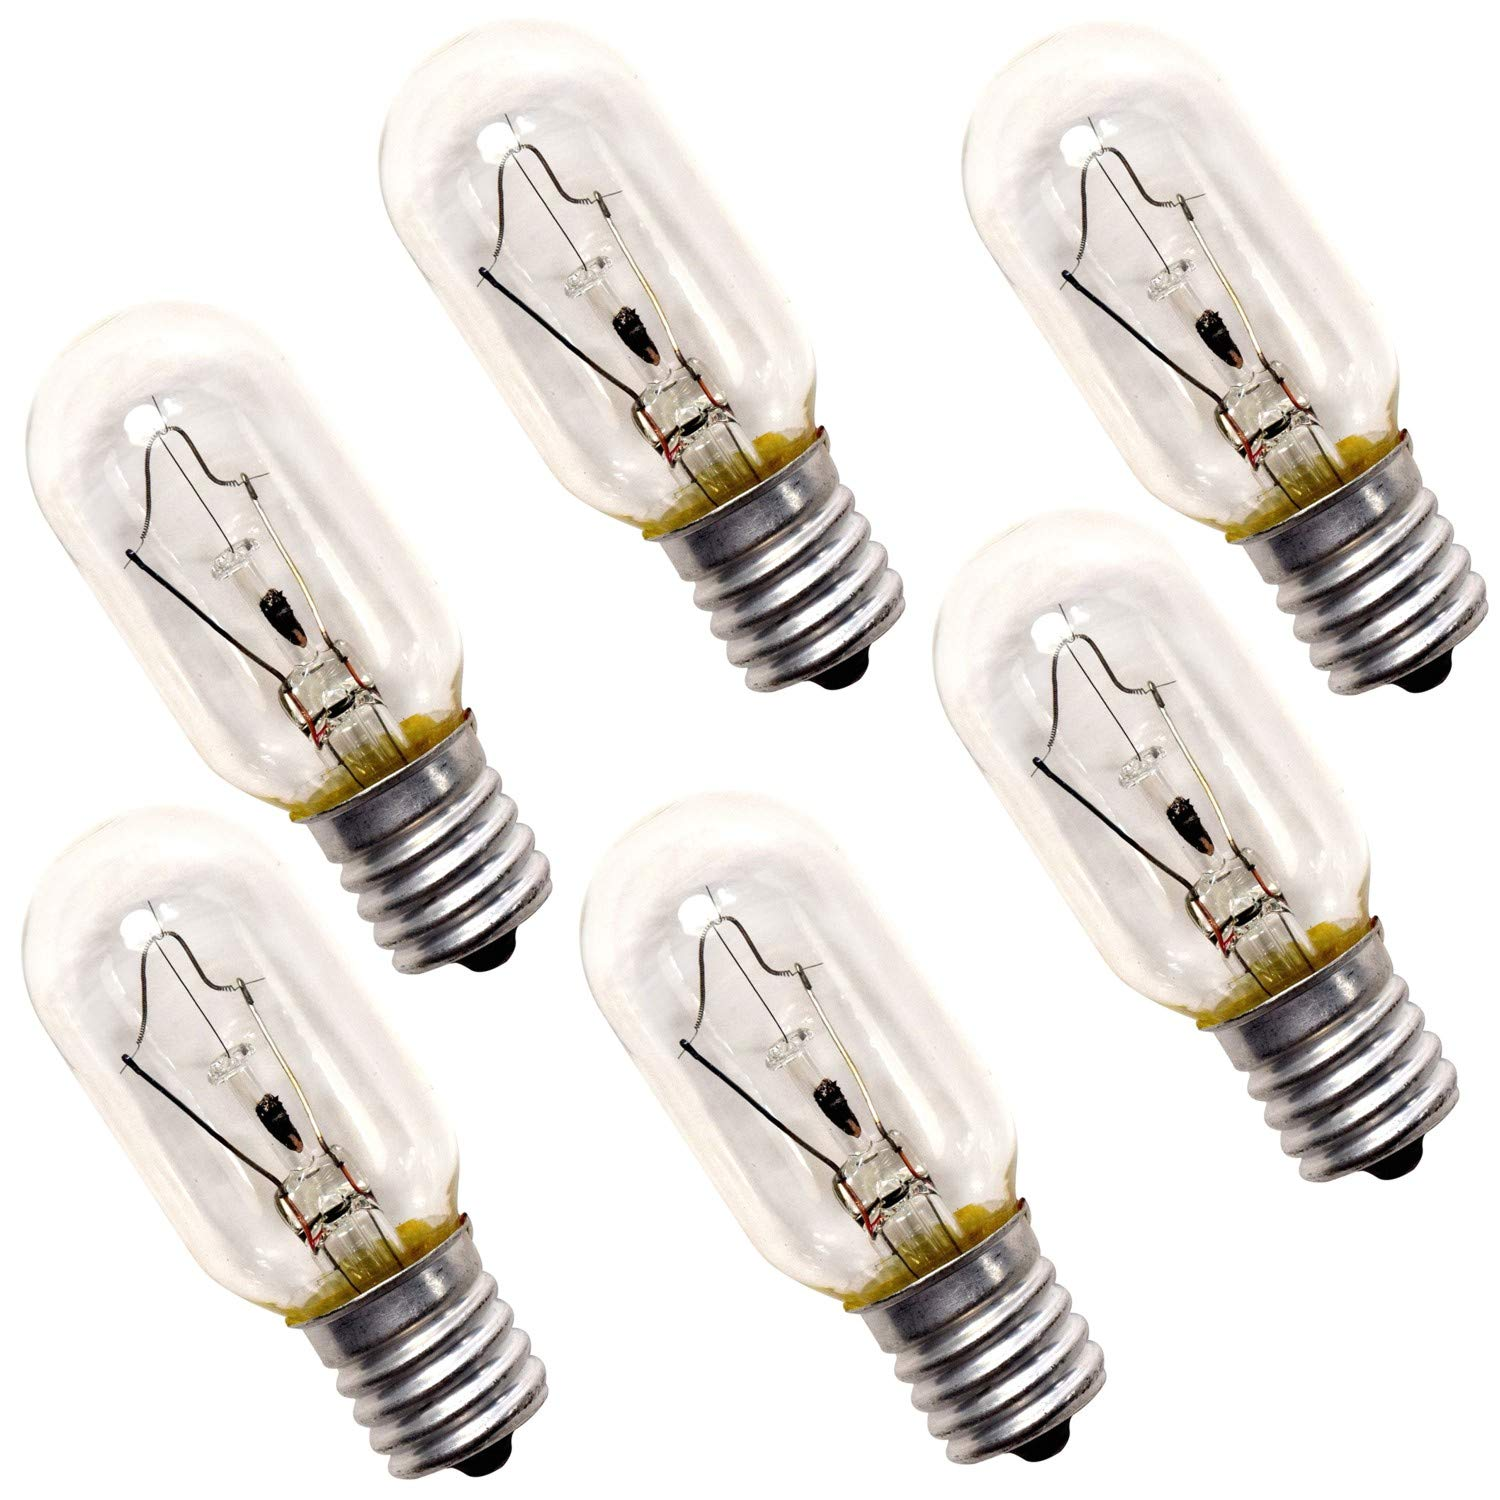 HQRP 6-Pack 40-Watt T8 40T8 Indicator Intermediate (E17) Base Tubular Incandescent Light Bulbs compatible with Appliance Microwave Oven Refrigerator Kitchen Vent Hood Range Hood Lights plus Coaster